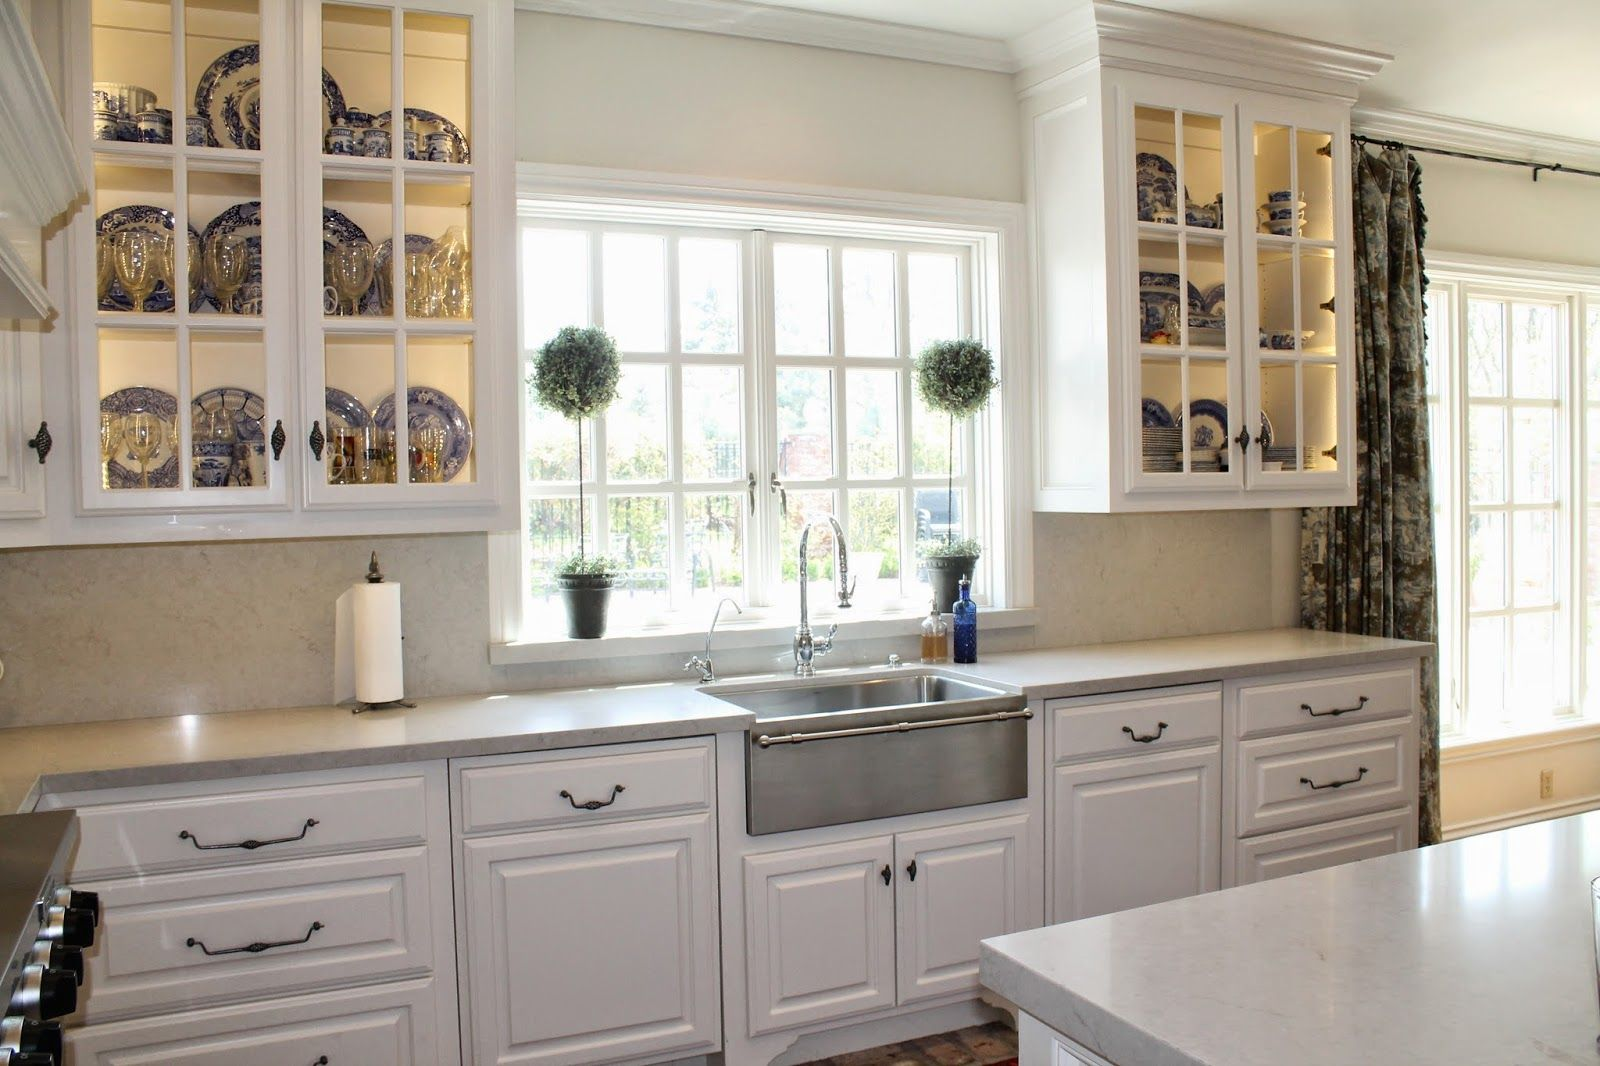 The Story Of An Eleven Gables Kitchen Remodel It Is Finished